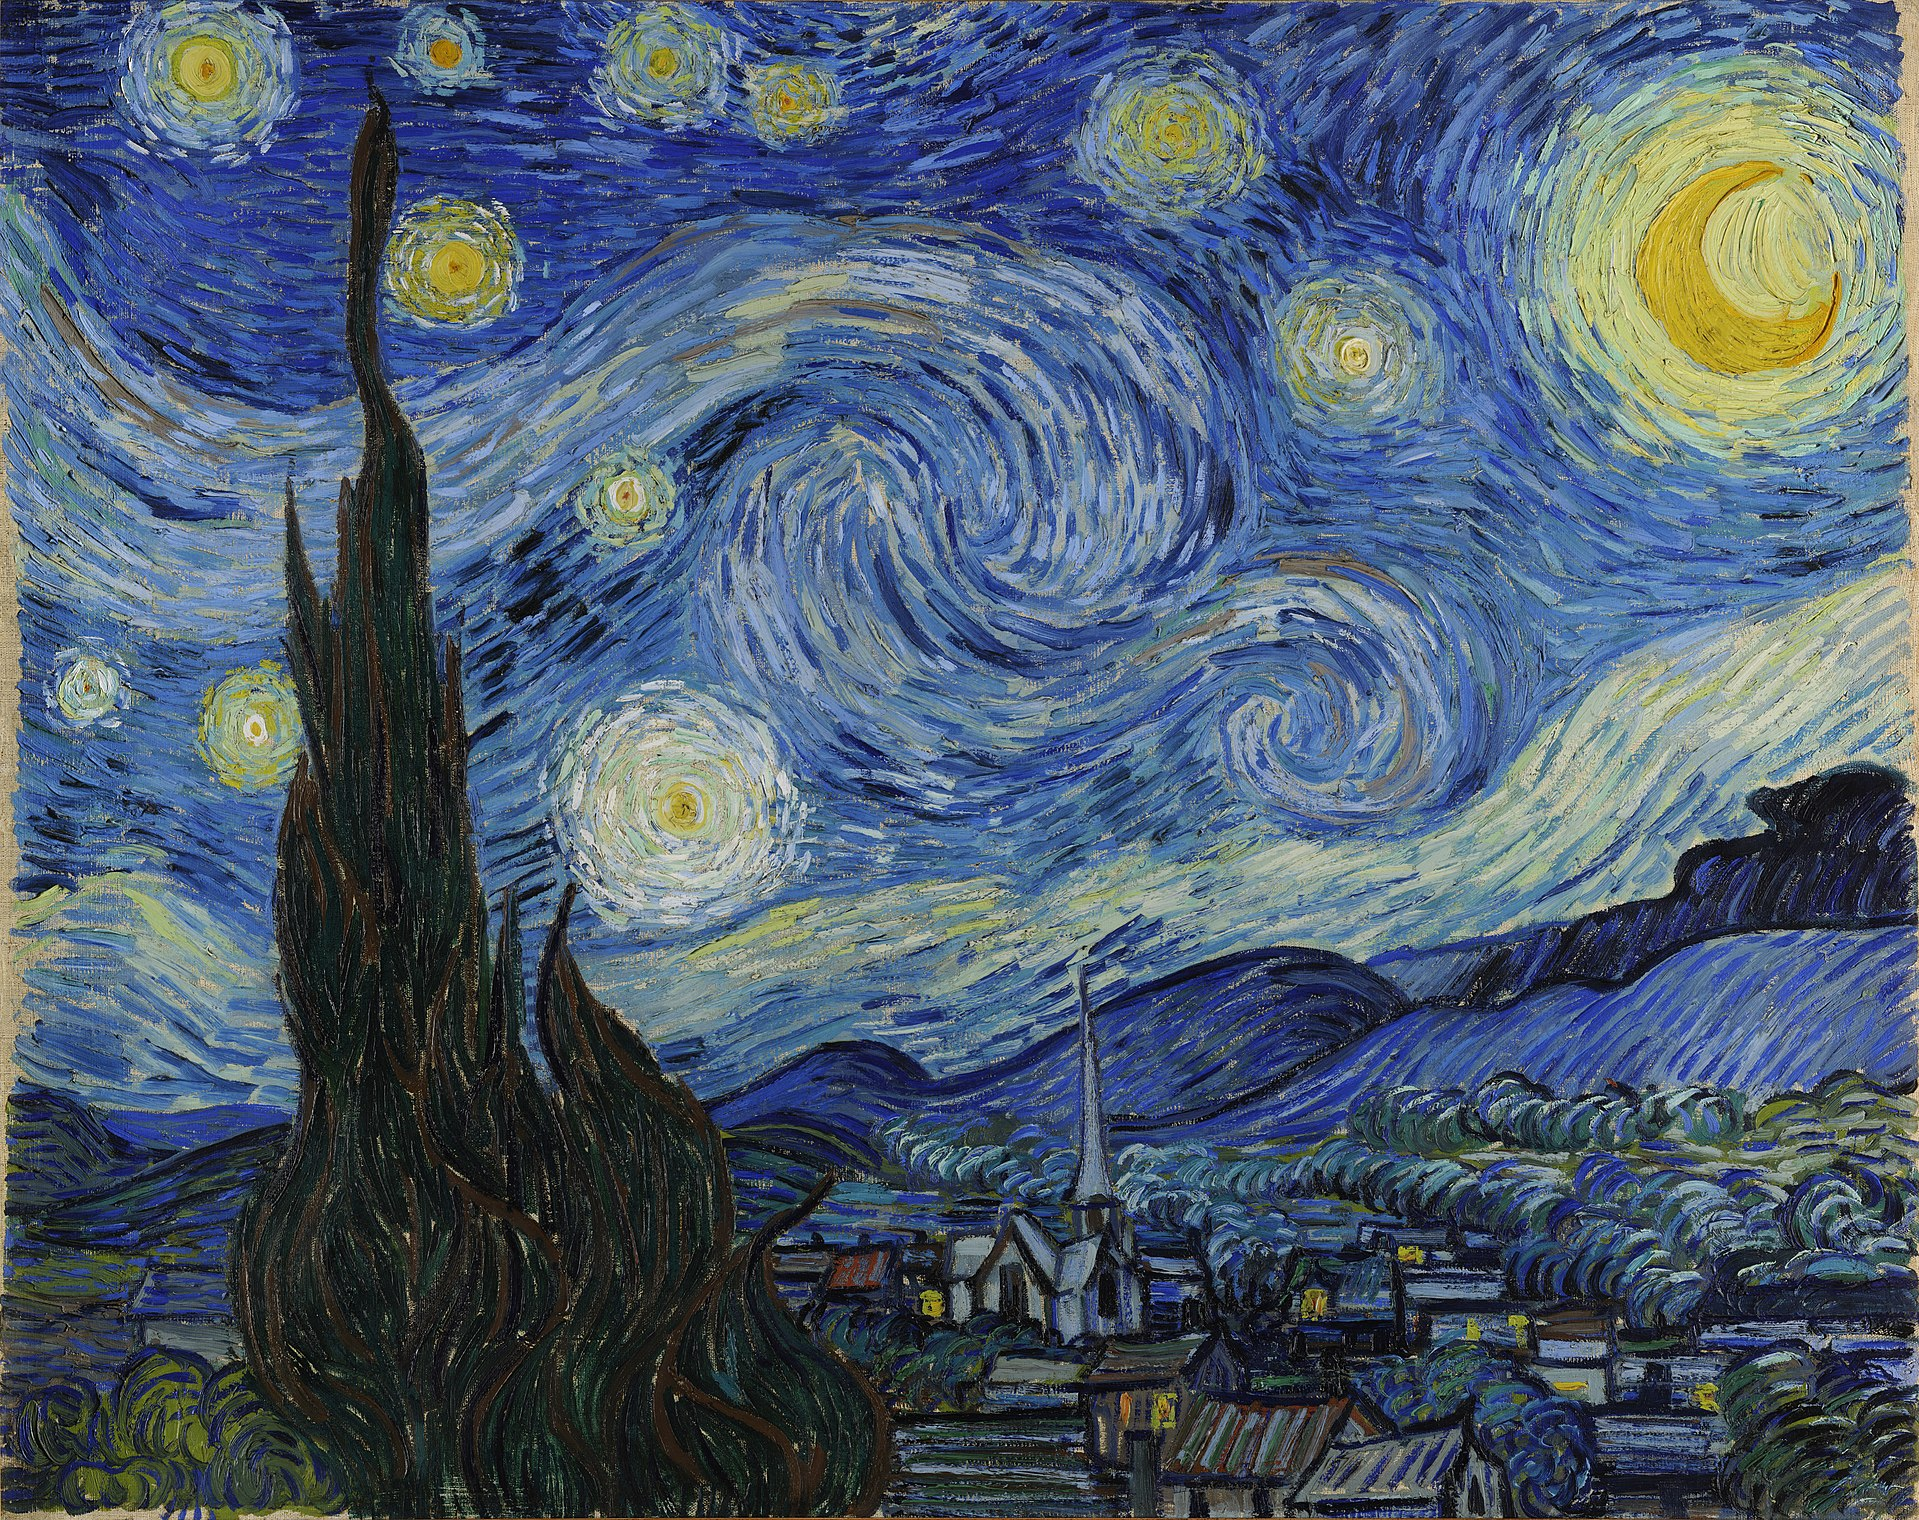 Van Gogh Starry Night La Nuit Etoilee Saint Paul Saint Remy travel